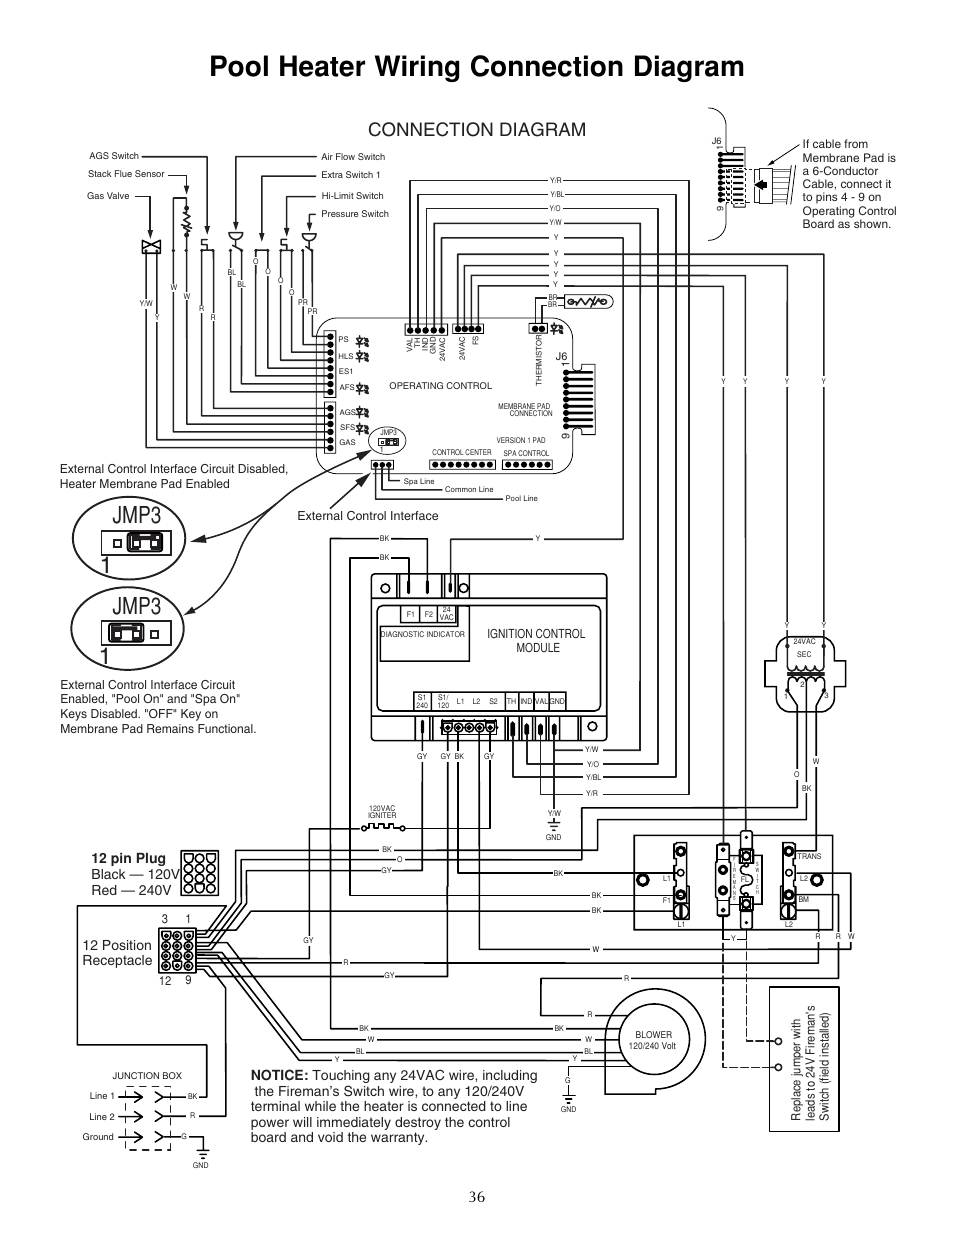 Pool heater wiring connection diagram, Jmp3 1 jmp3 1